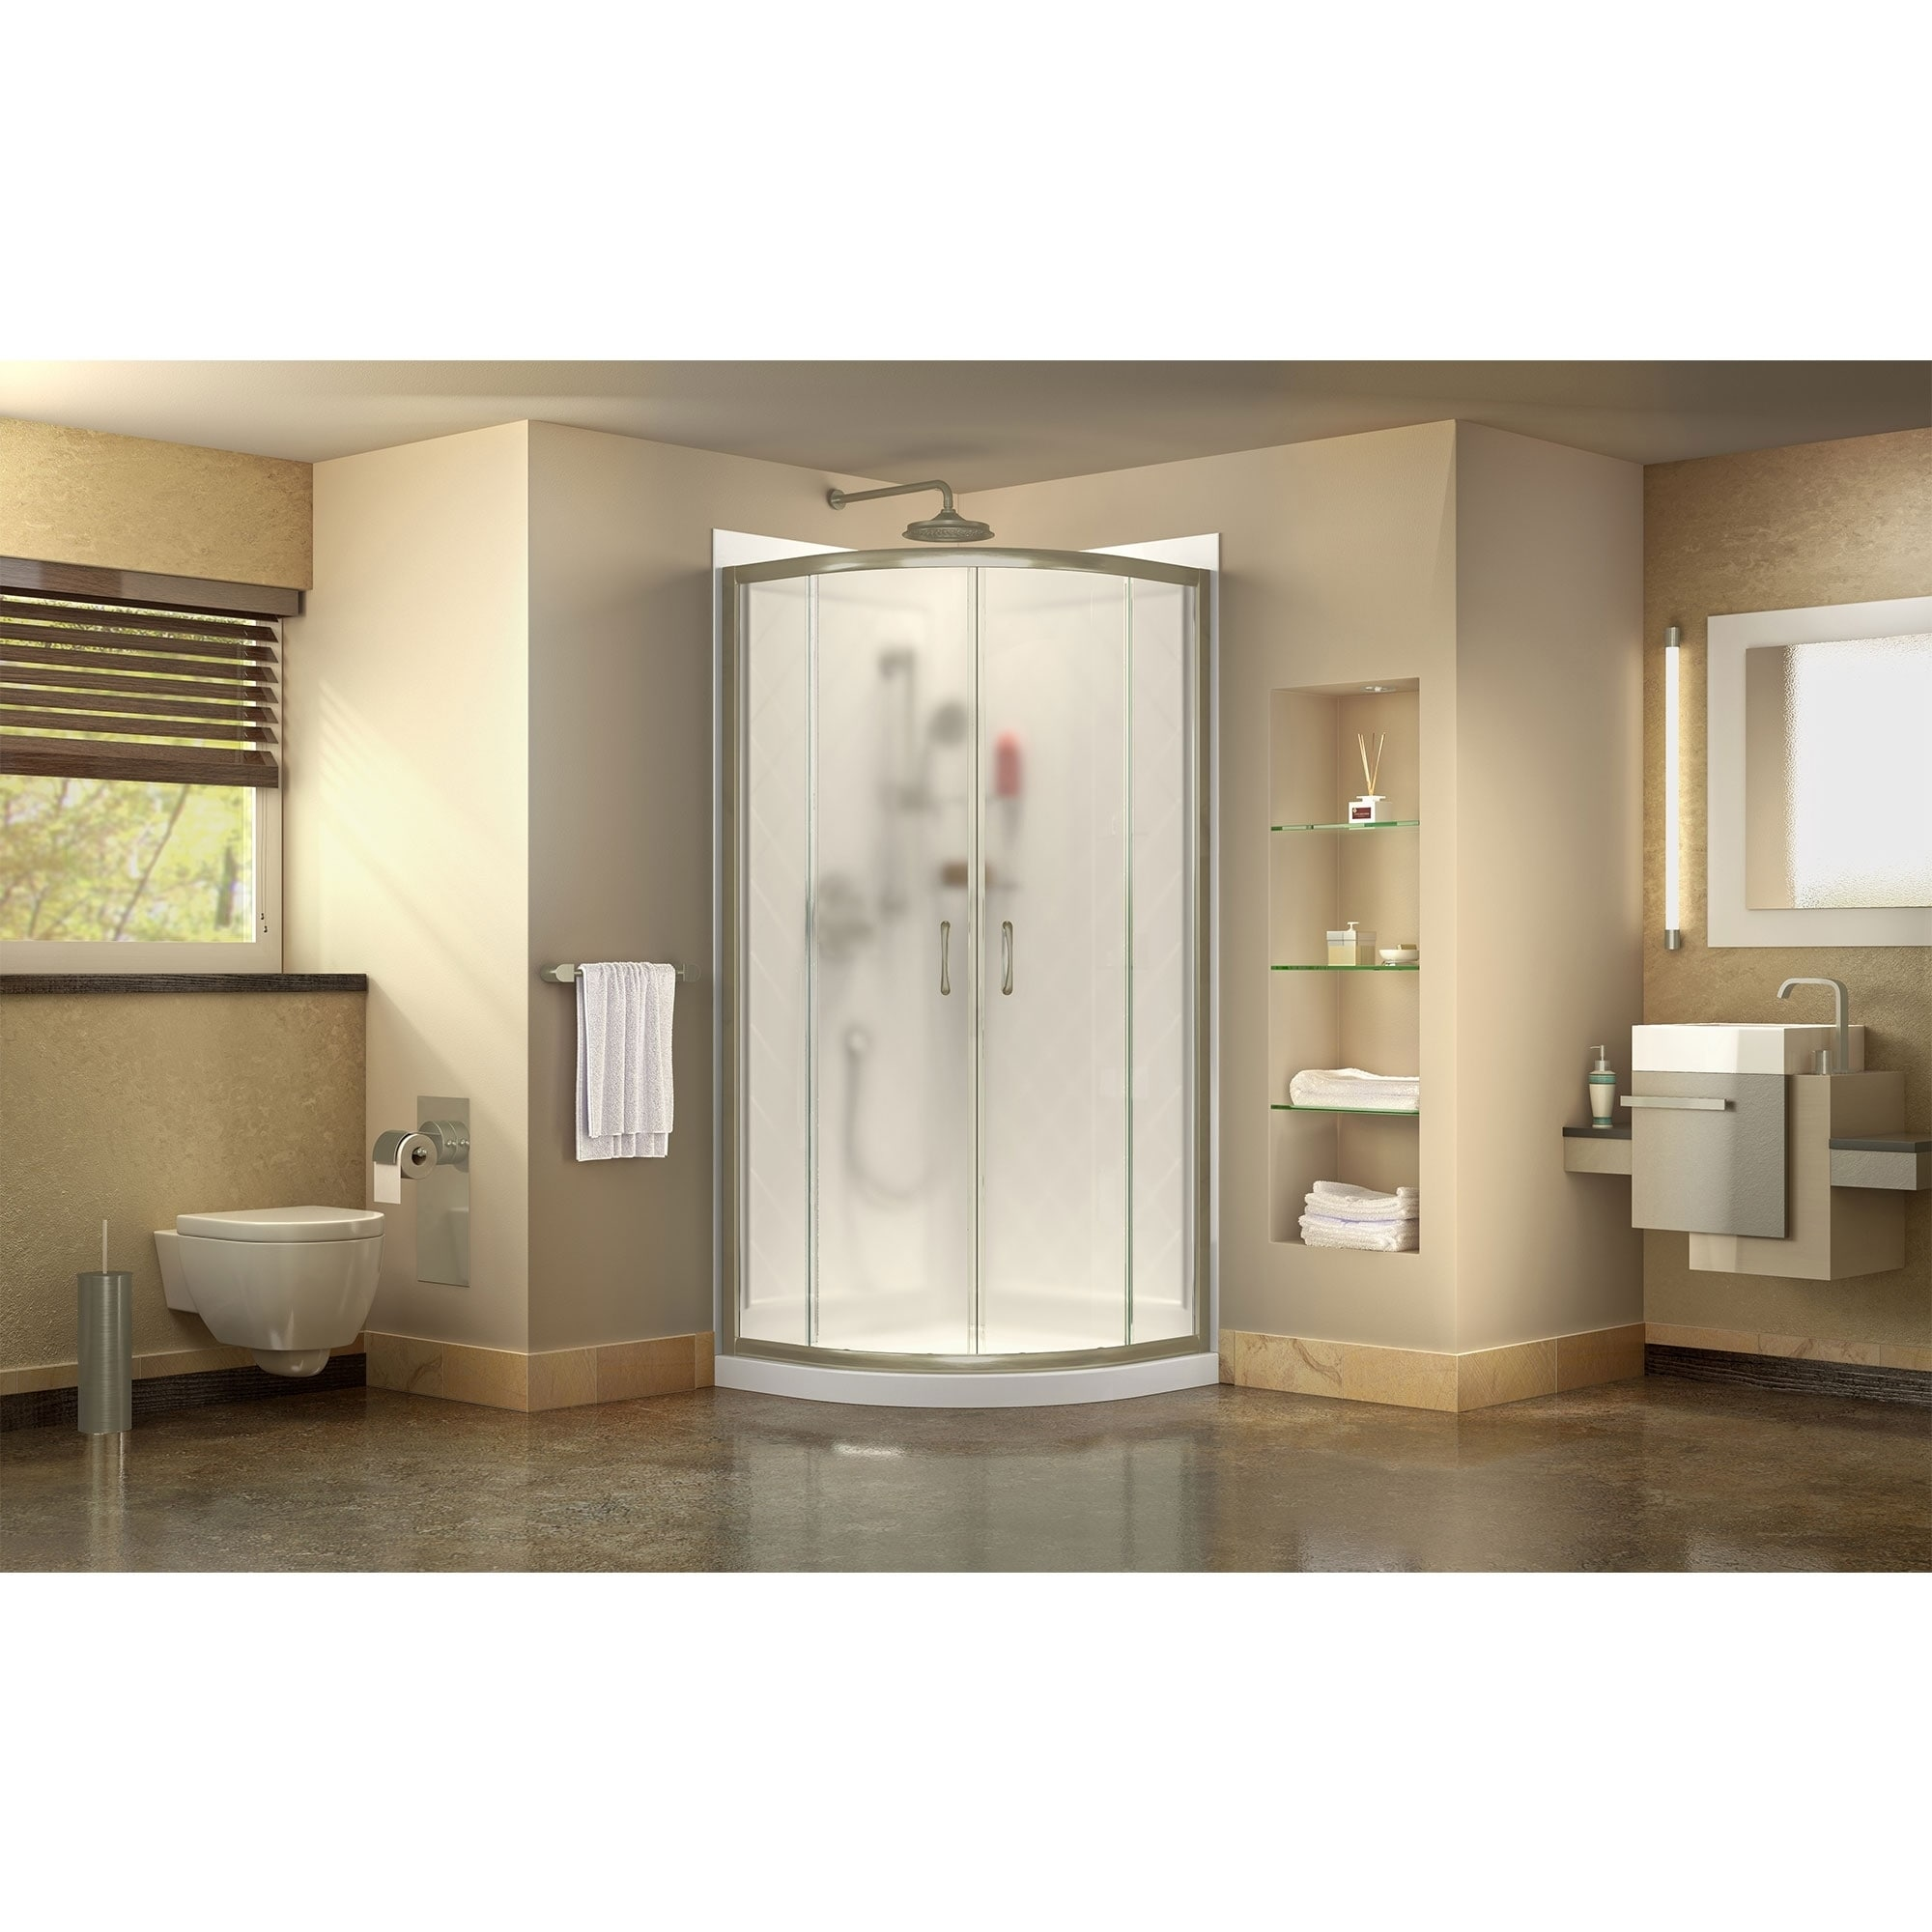 Dreamline Prime 33 In X 33 In X 76 3 4 In H Shower Enclosure Shower Base And Acrylic Backwall Kit 33 X 33